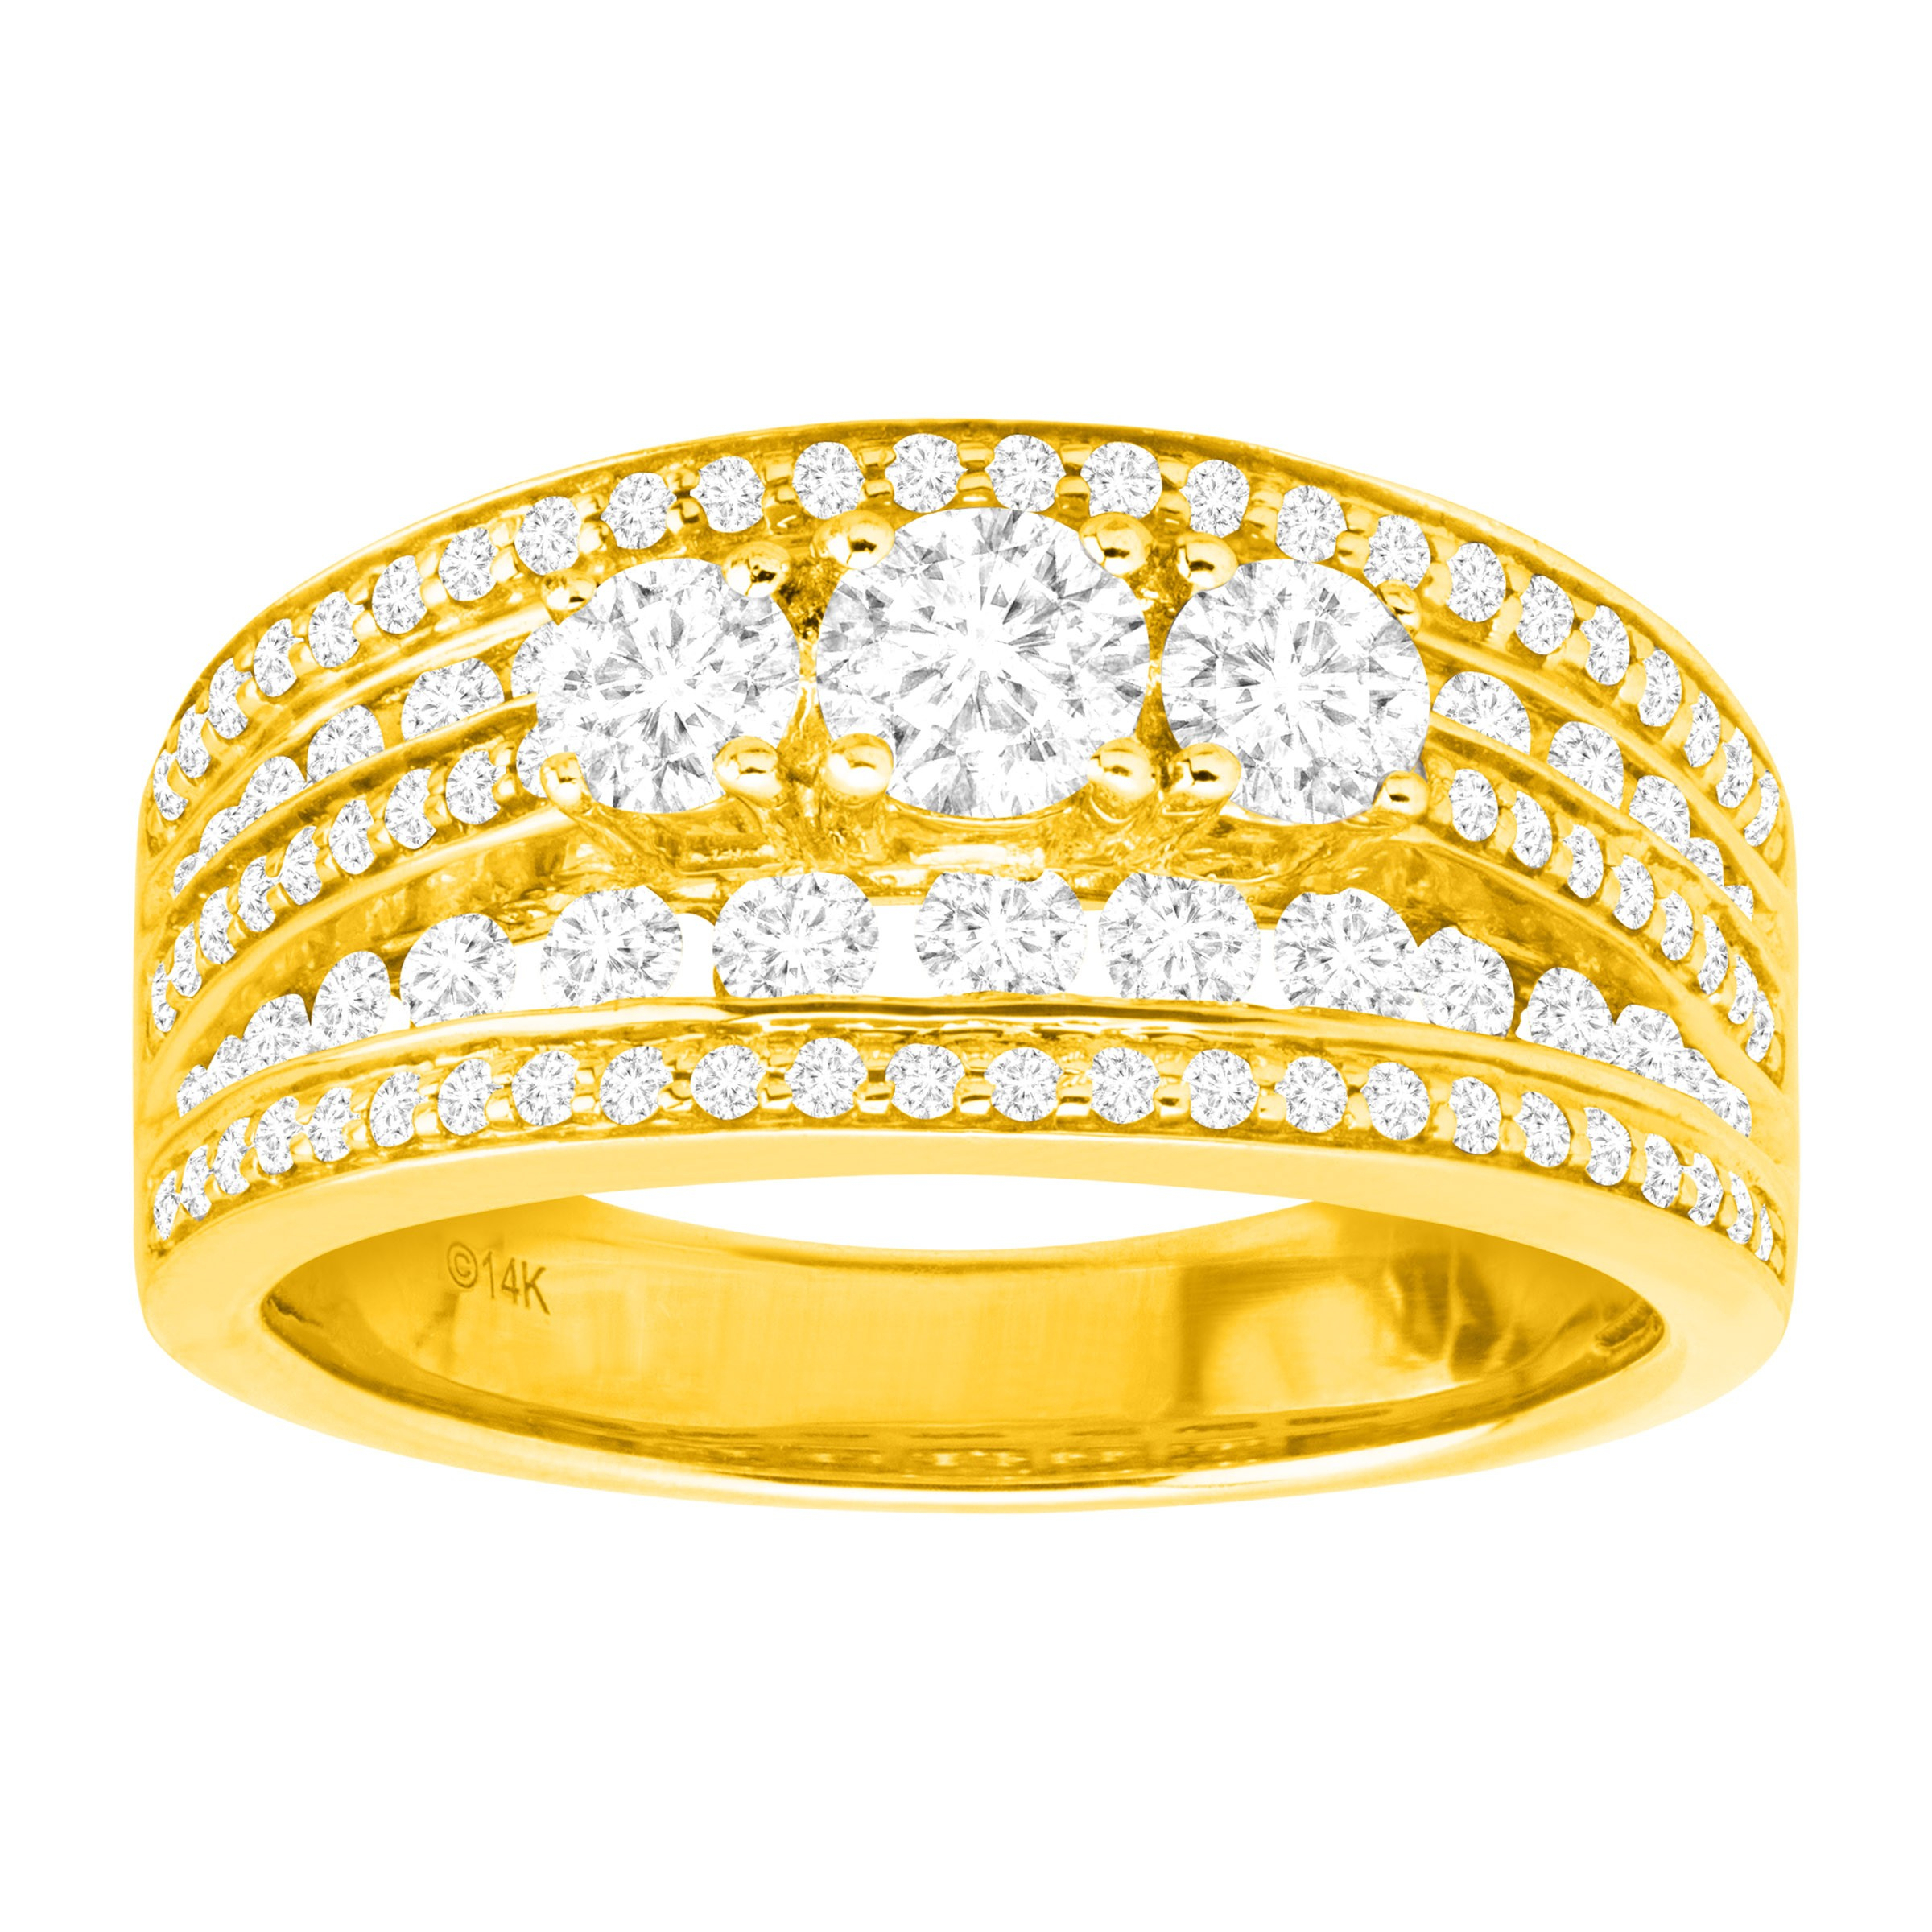 Details About Igi Certified 1 1/2 Ct Diamond Multi Band Anniversary Ring In  14K Gold With Regard To Recent Certified Diamond Anniversary Bands In Gold (View 10 of 25)